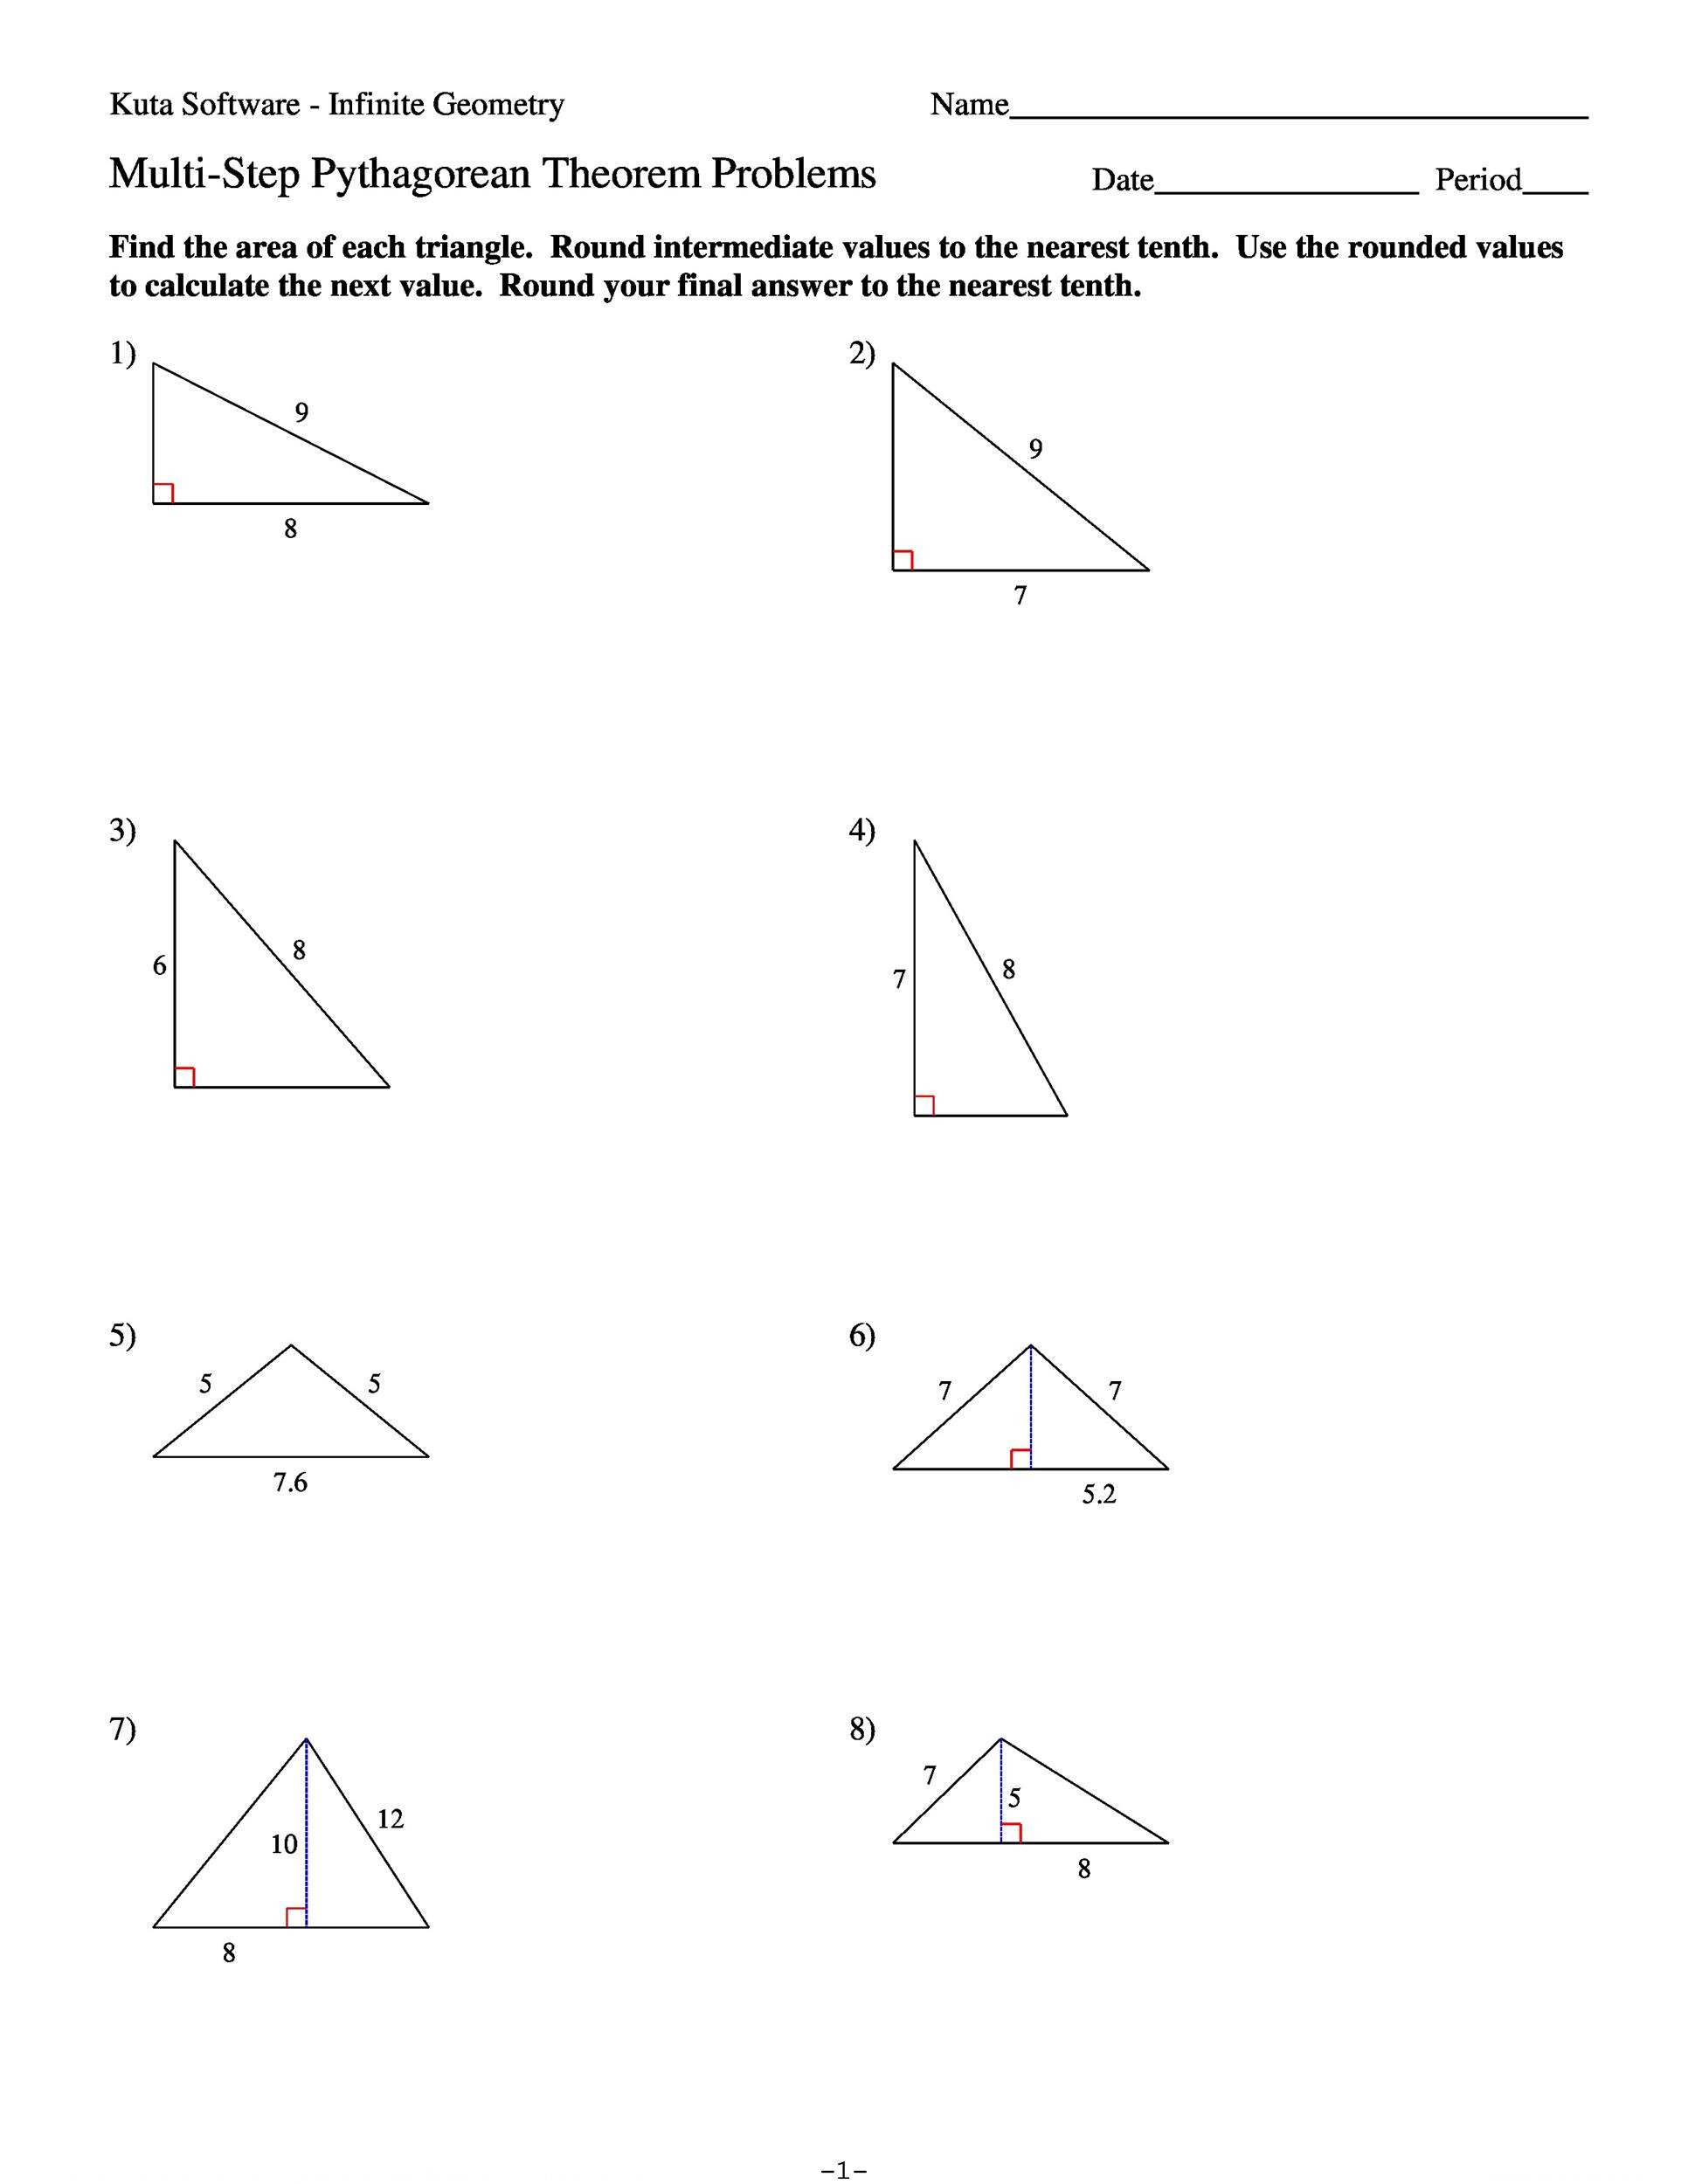 Pythagorean theorem Worksheet with Answers 30 Pythagoras theorem Problems Worksheet Free Worksheet